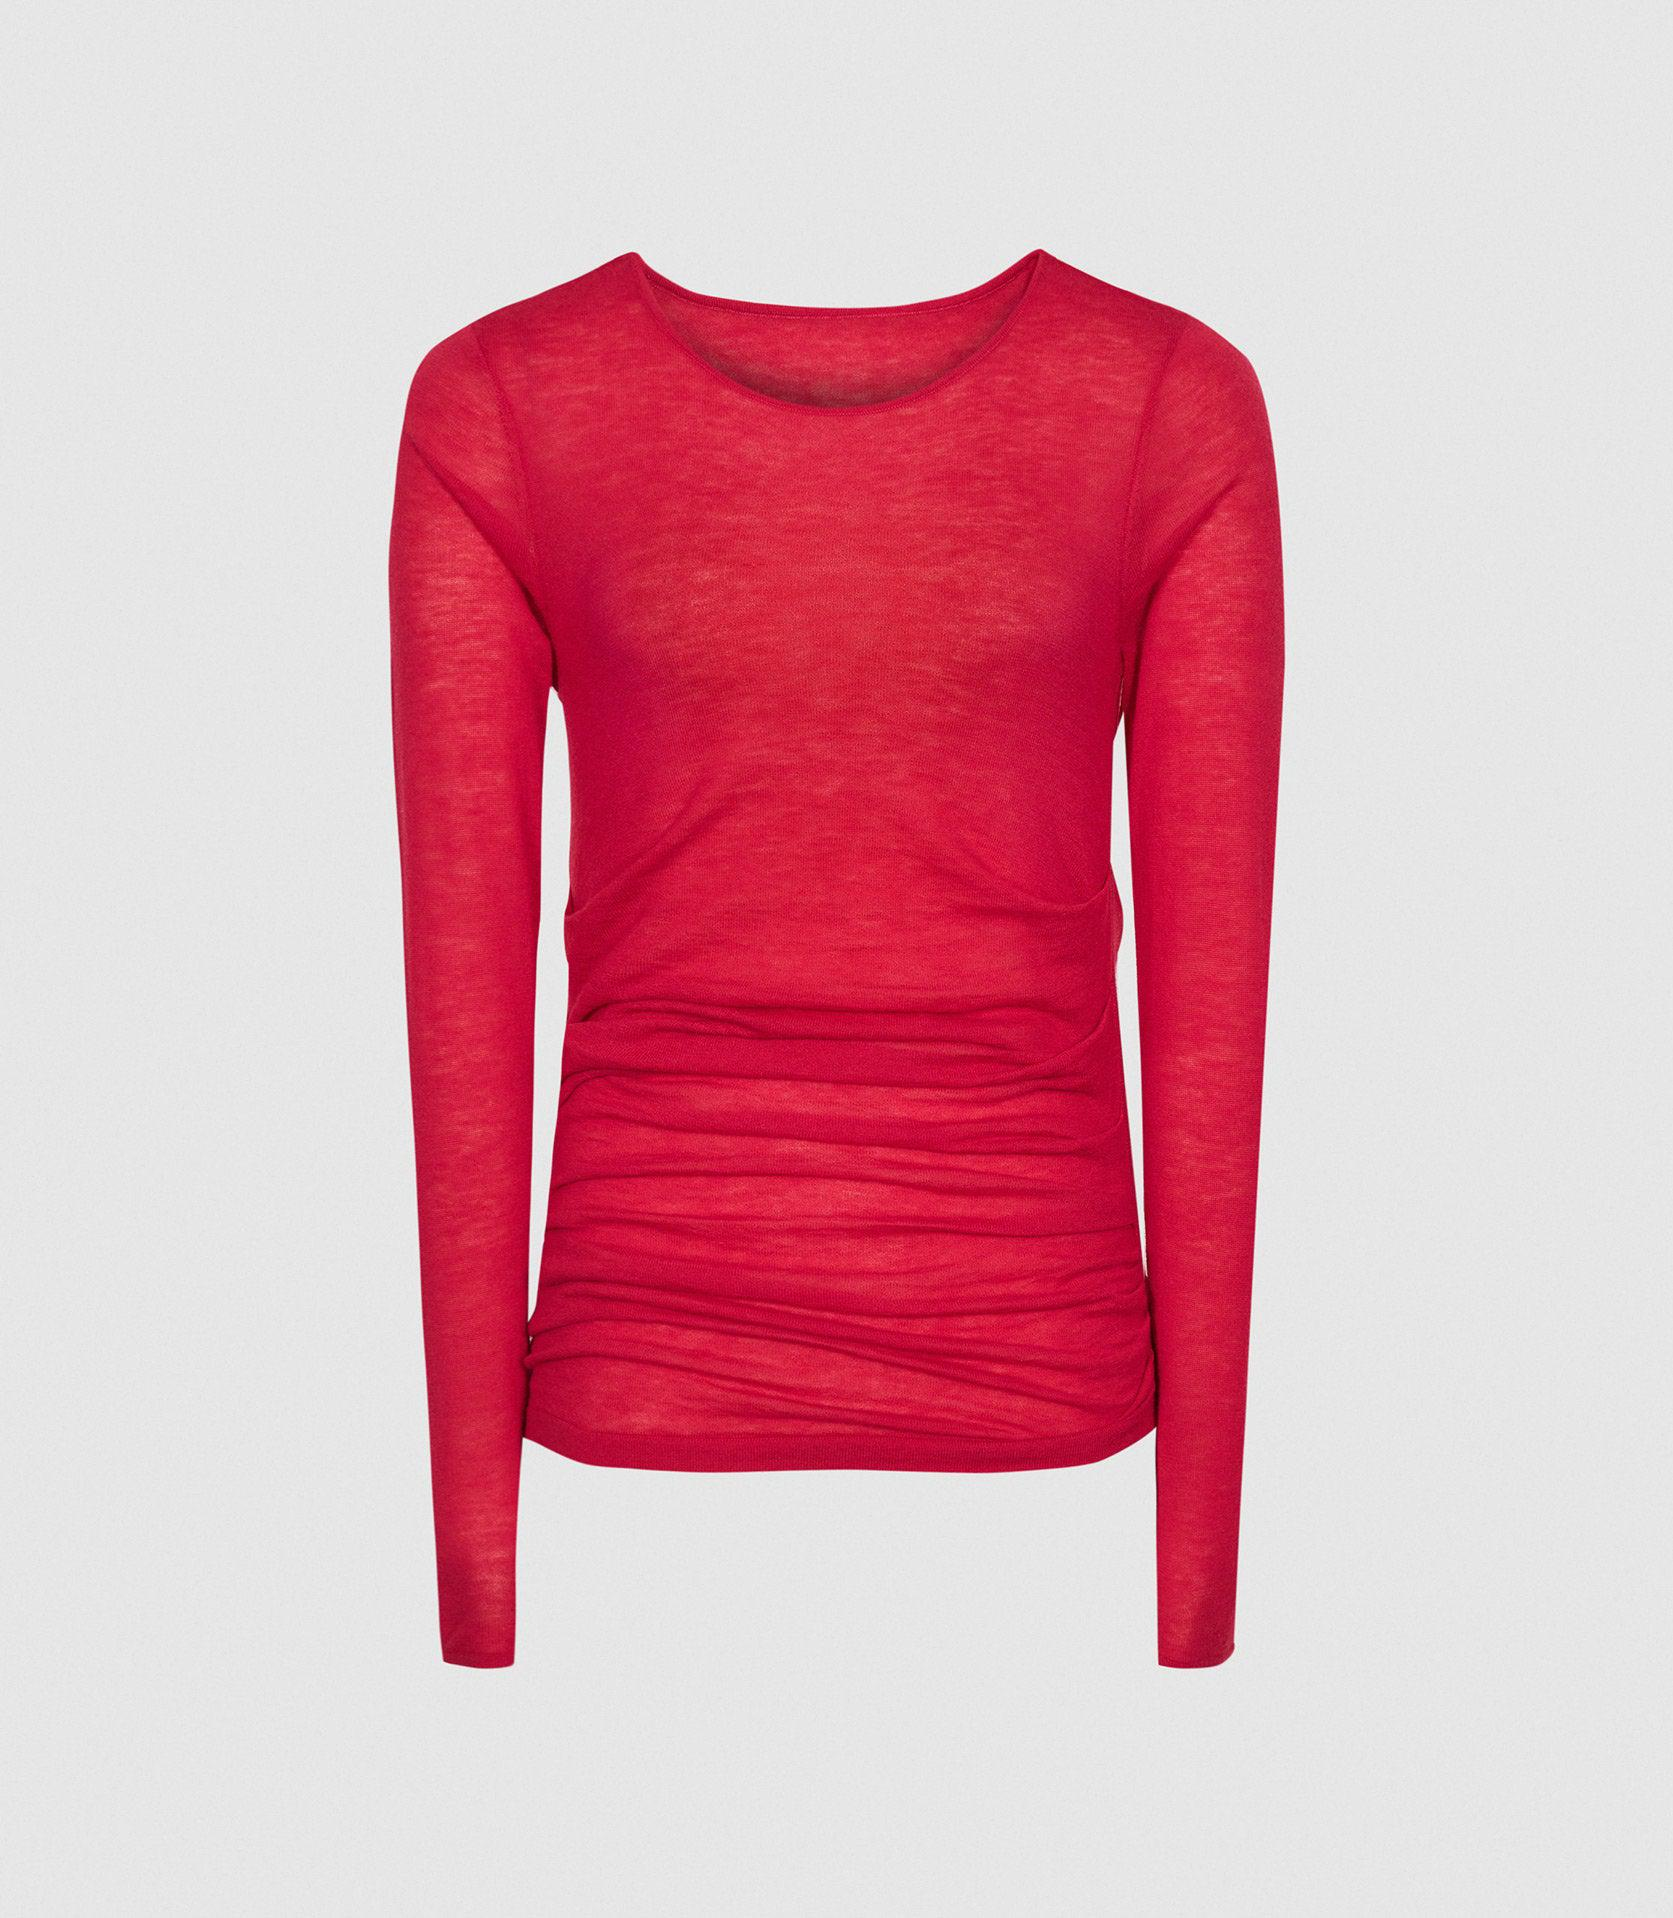 MARGOT - WOOL CASHMERE BLEND RUCHED TOP 6